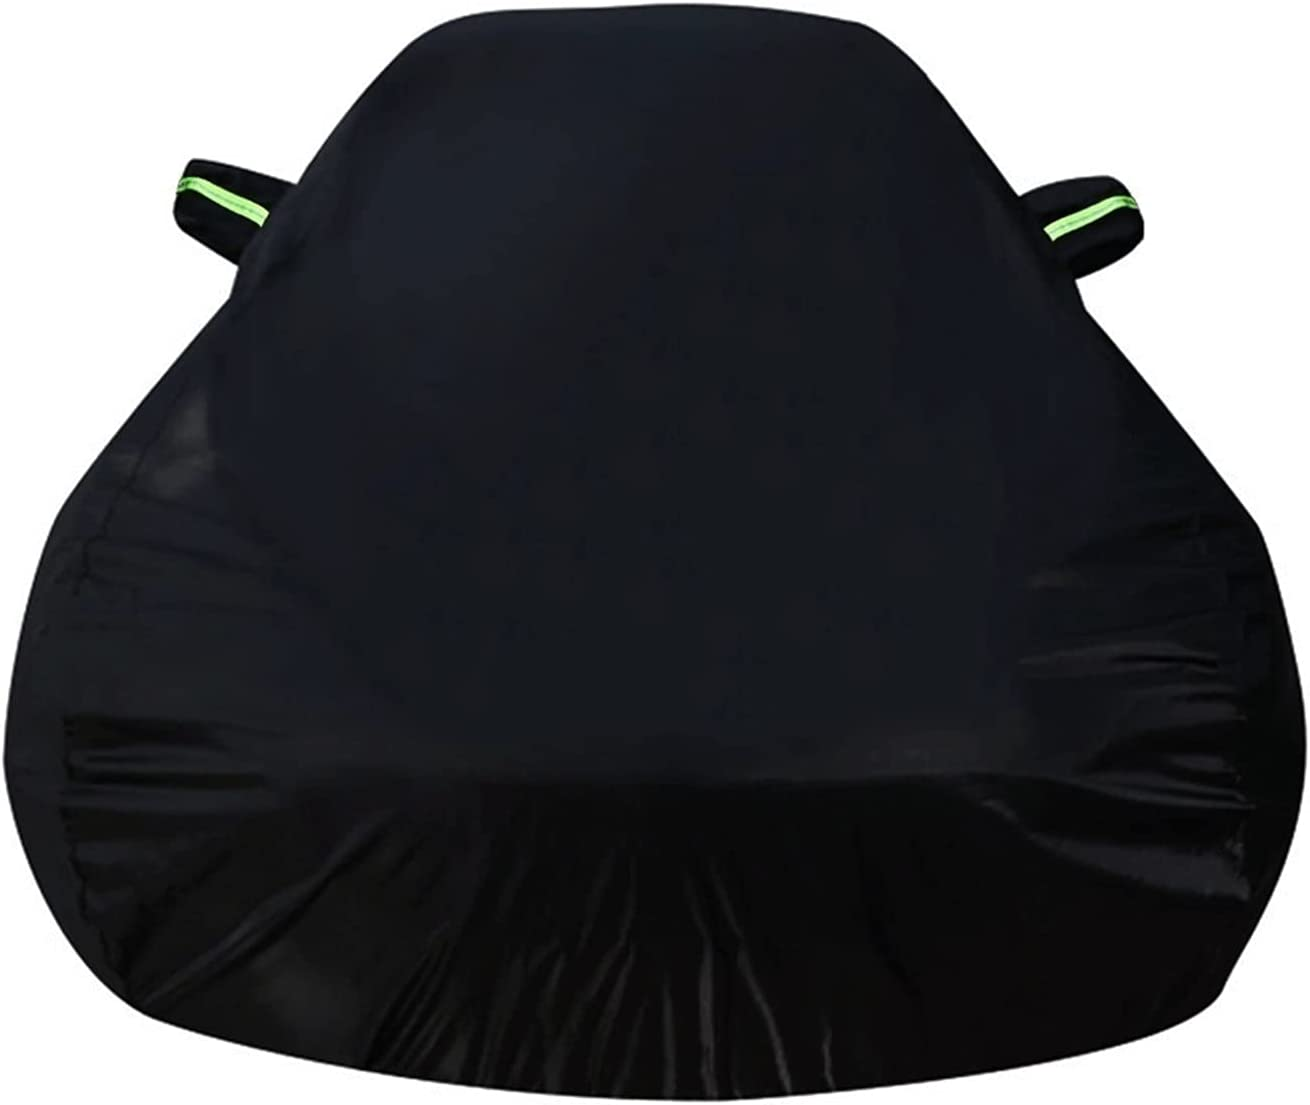 Full auto List price Vehicle Durable Exterior Cover Compatible car Super Special SALE held BMW with